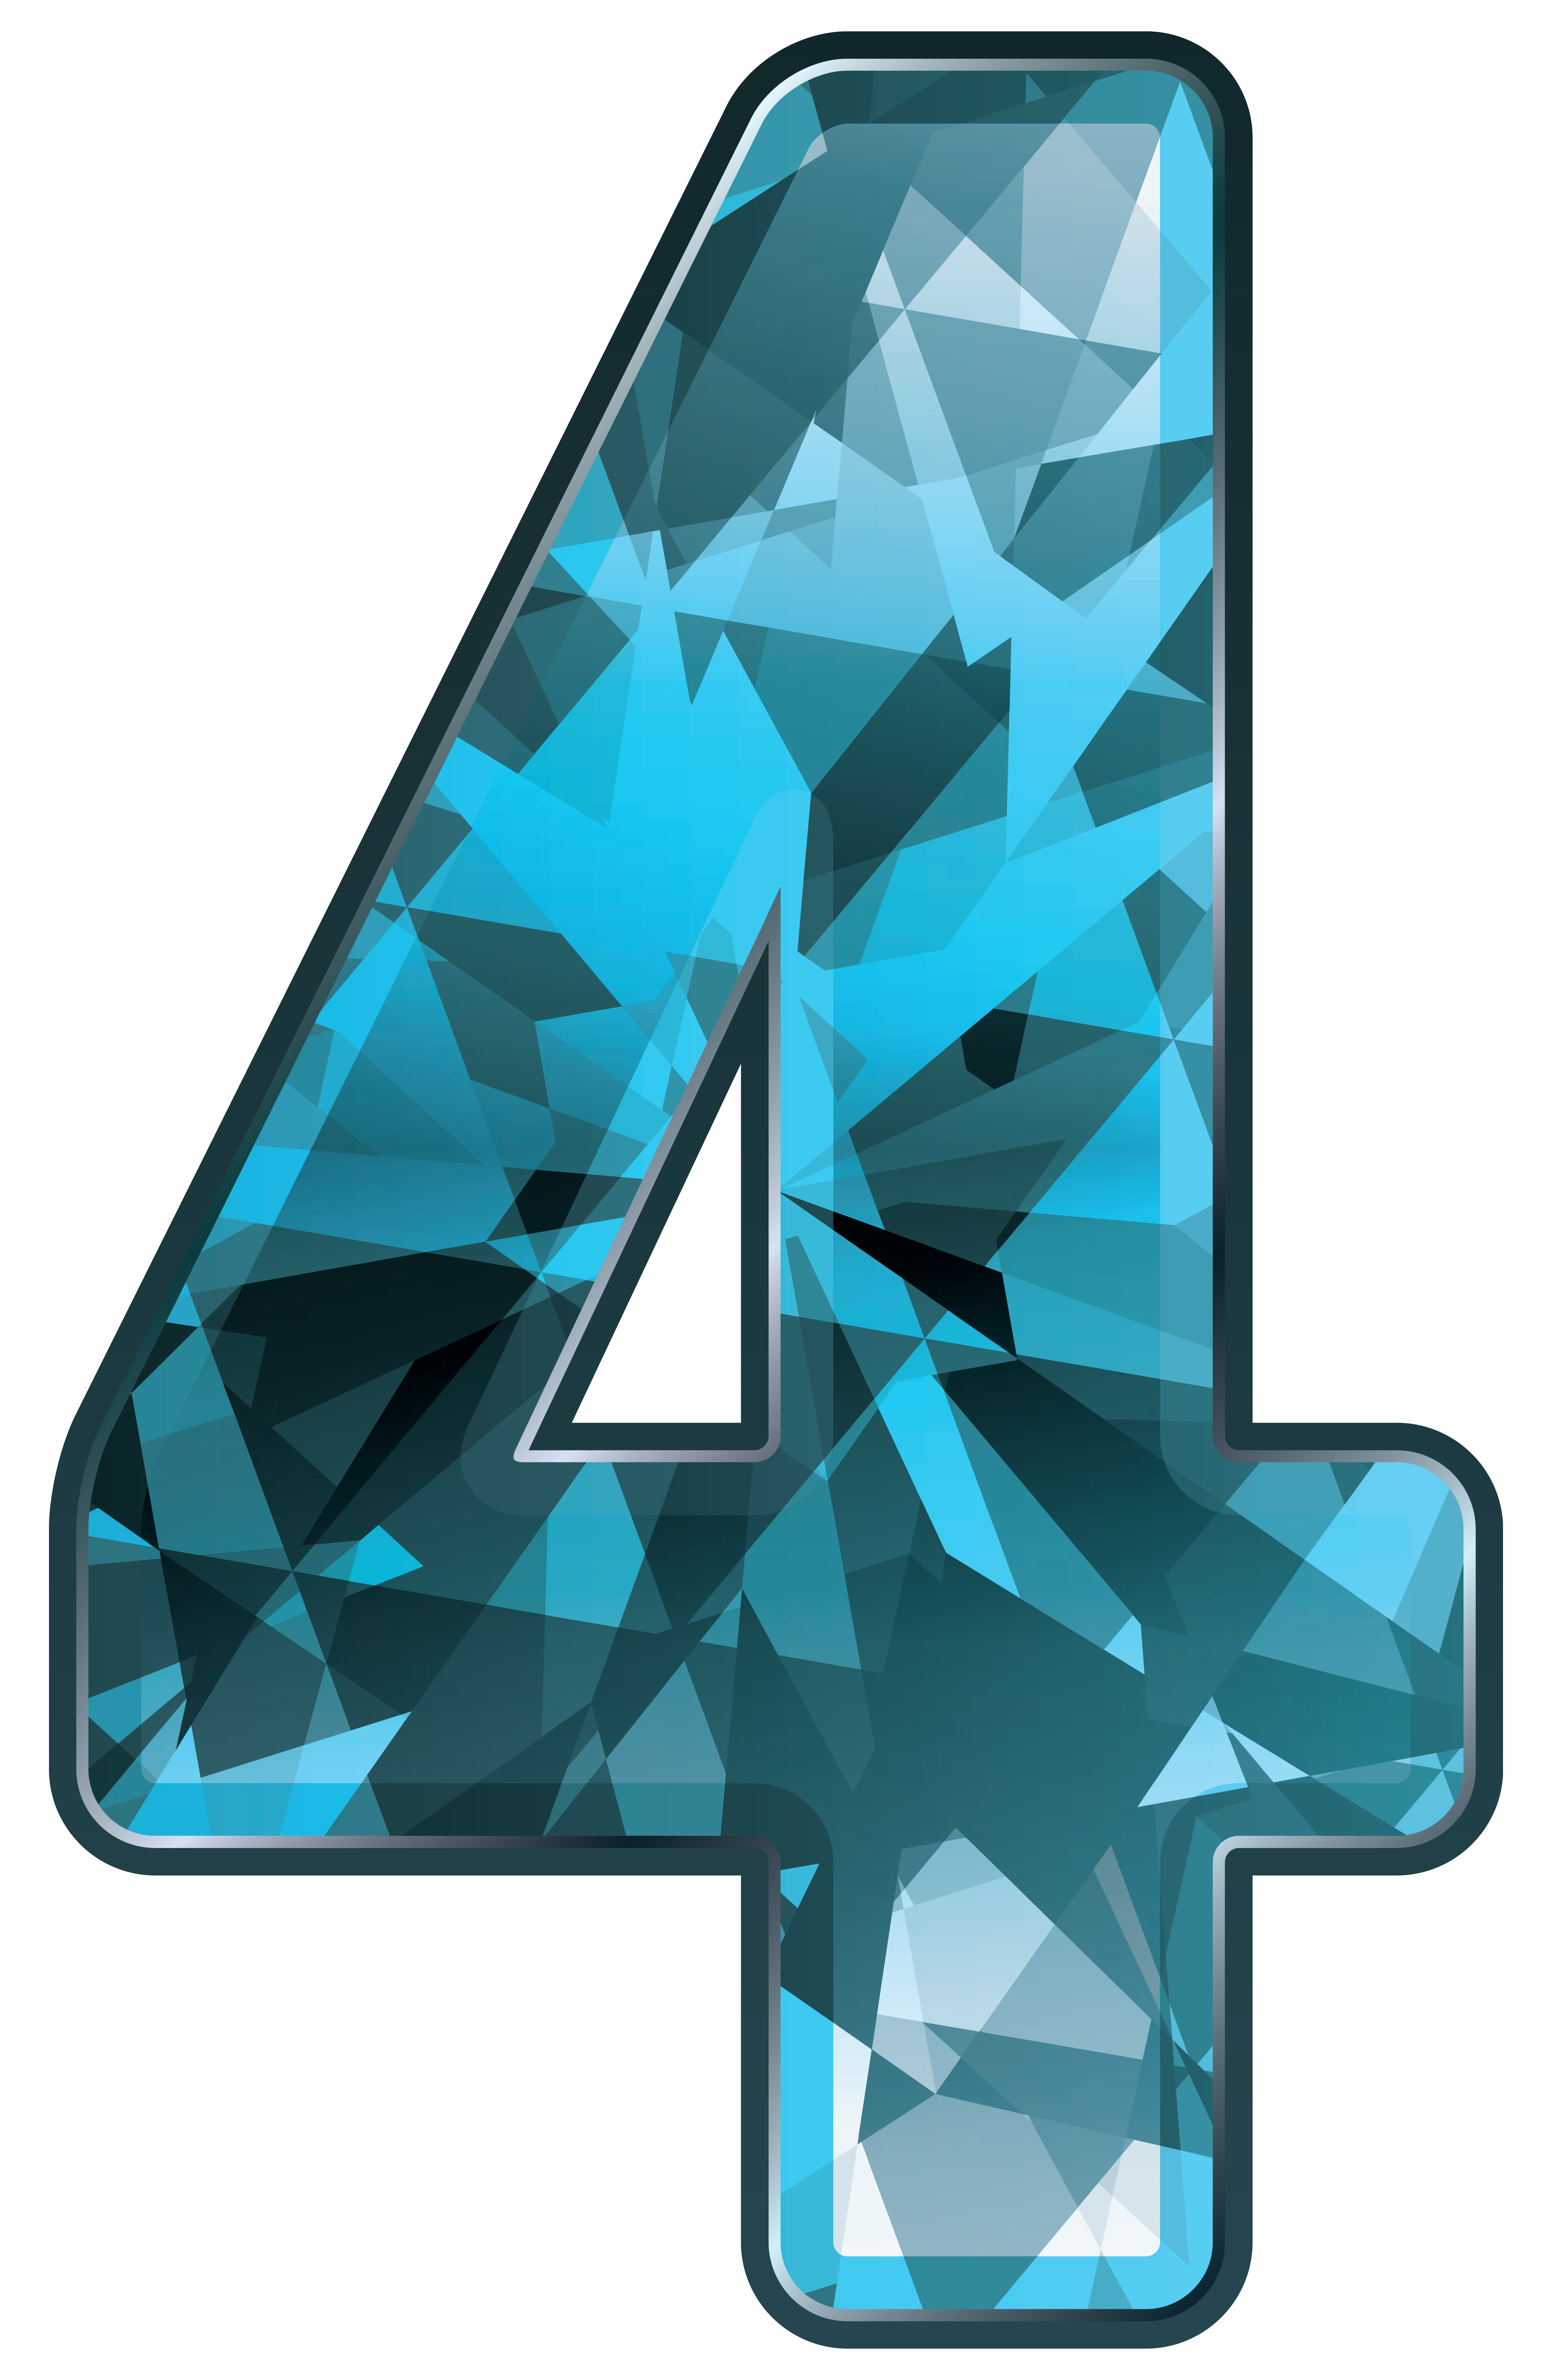 Blue Crystal Number Four Png Clipart Image Gallery Yopriceville High Quality Images And Transparent Png Free Clipart Clip Art Blue Crystals Free Clip Art